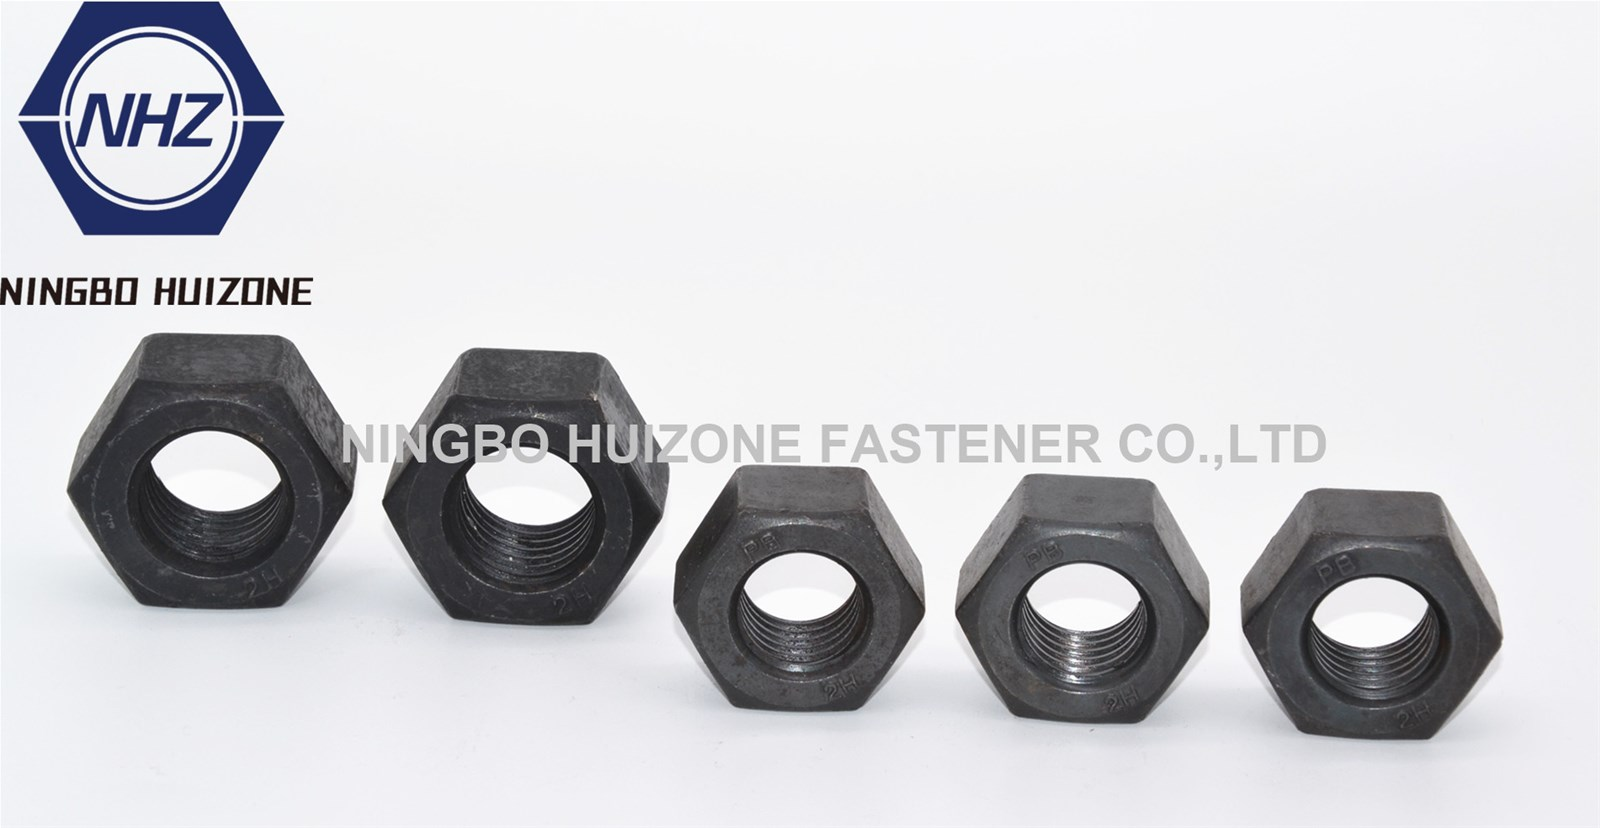 Heavy Hex Nuts ASTM A194194M Grade 2H2HM477M88M